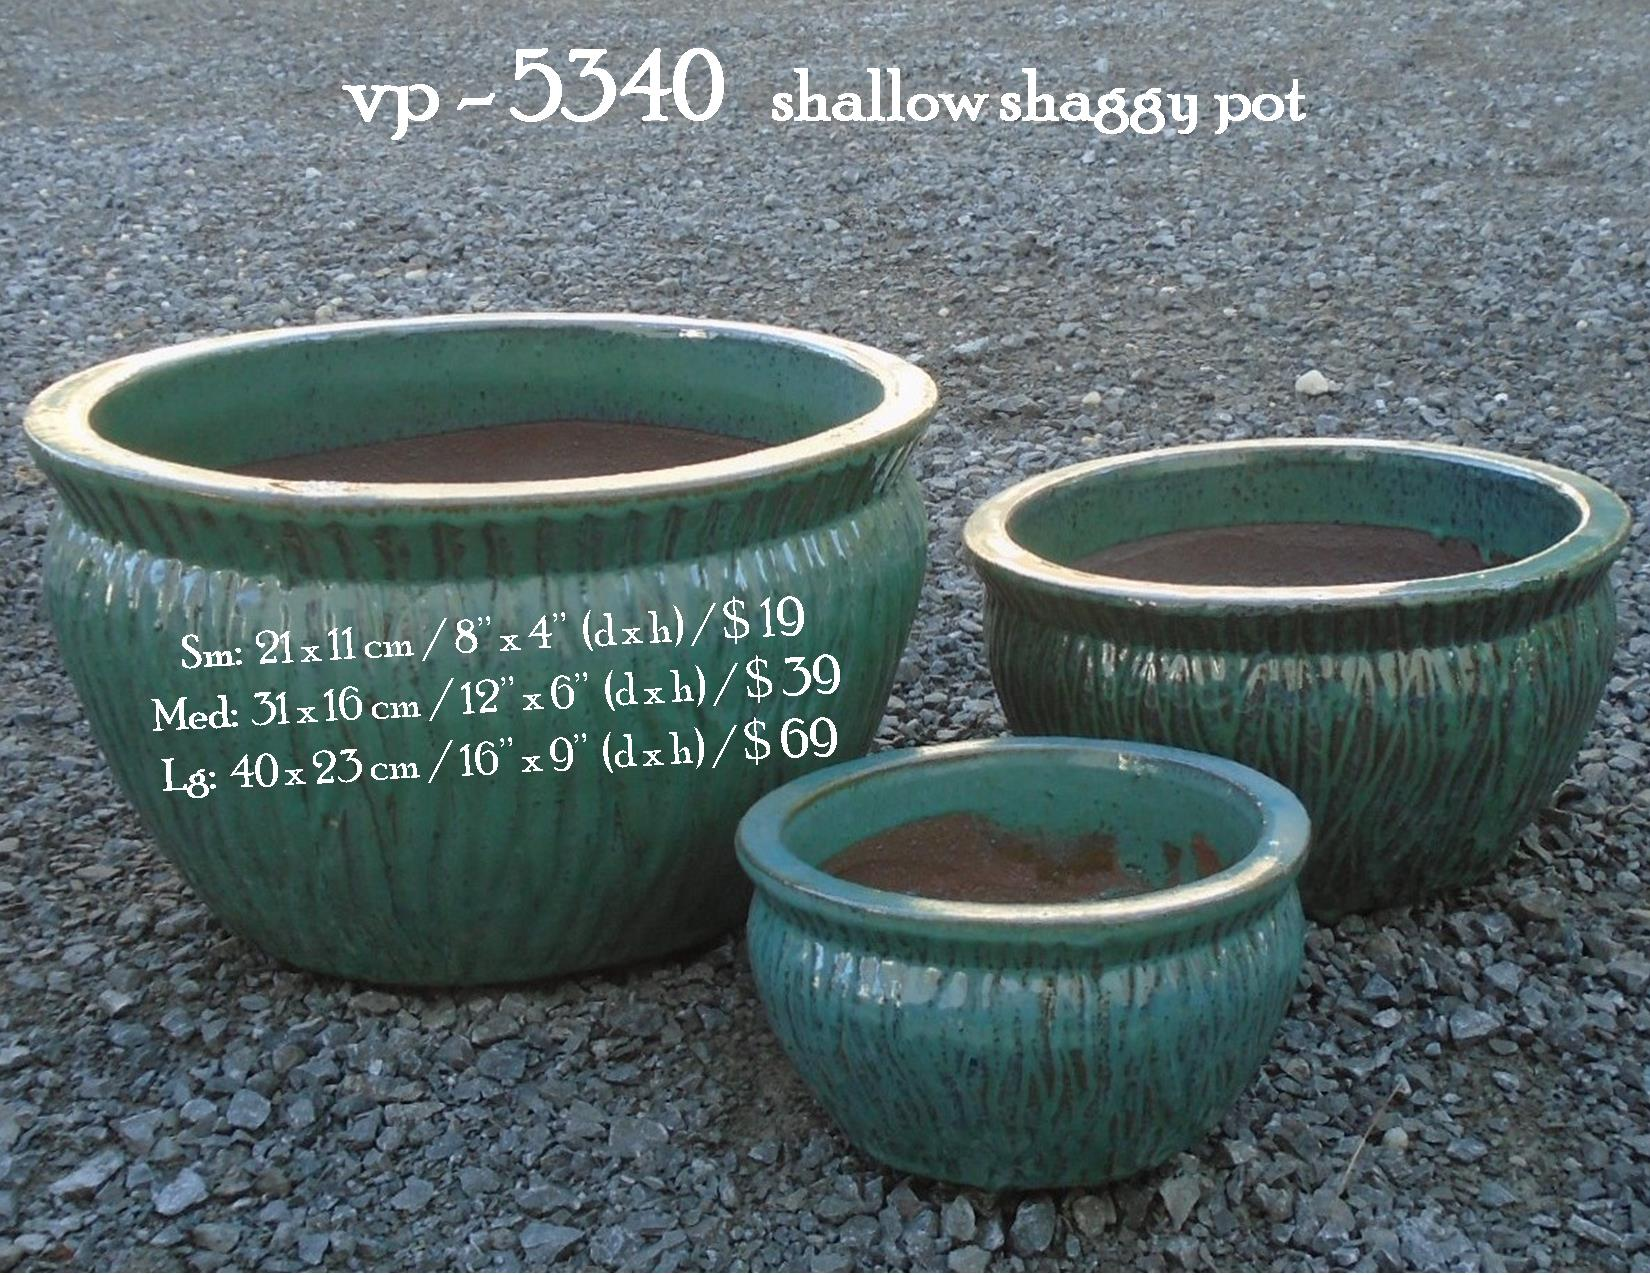 vp - 5340   shallow shaggy pot